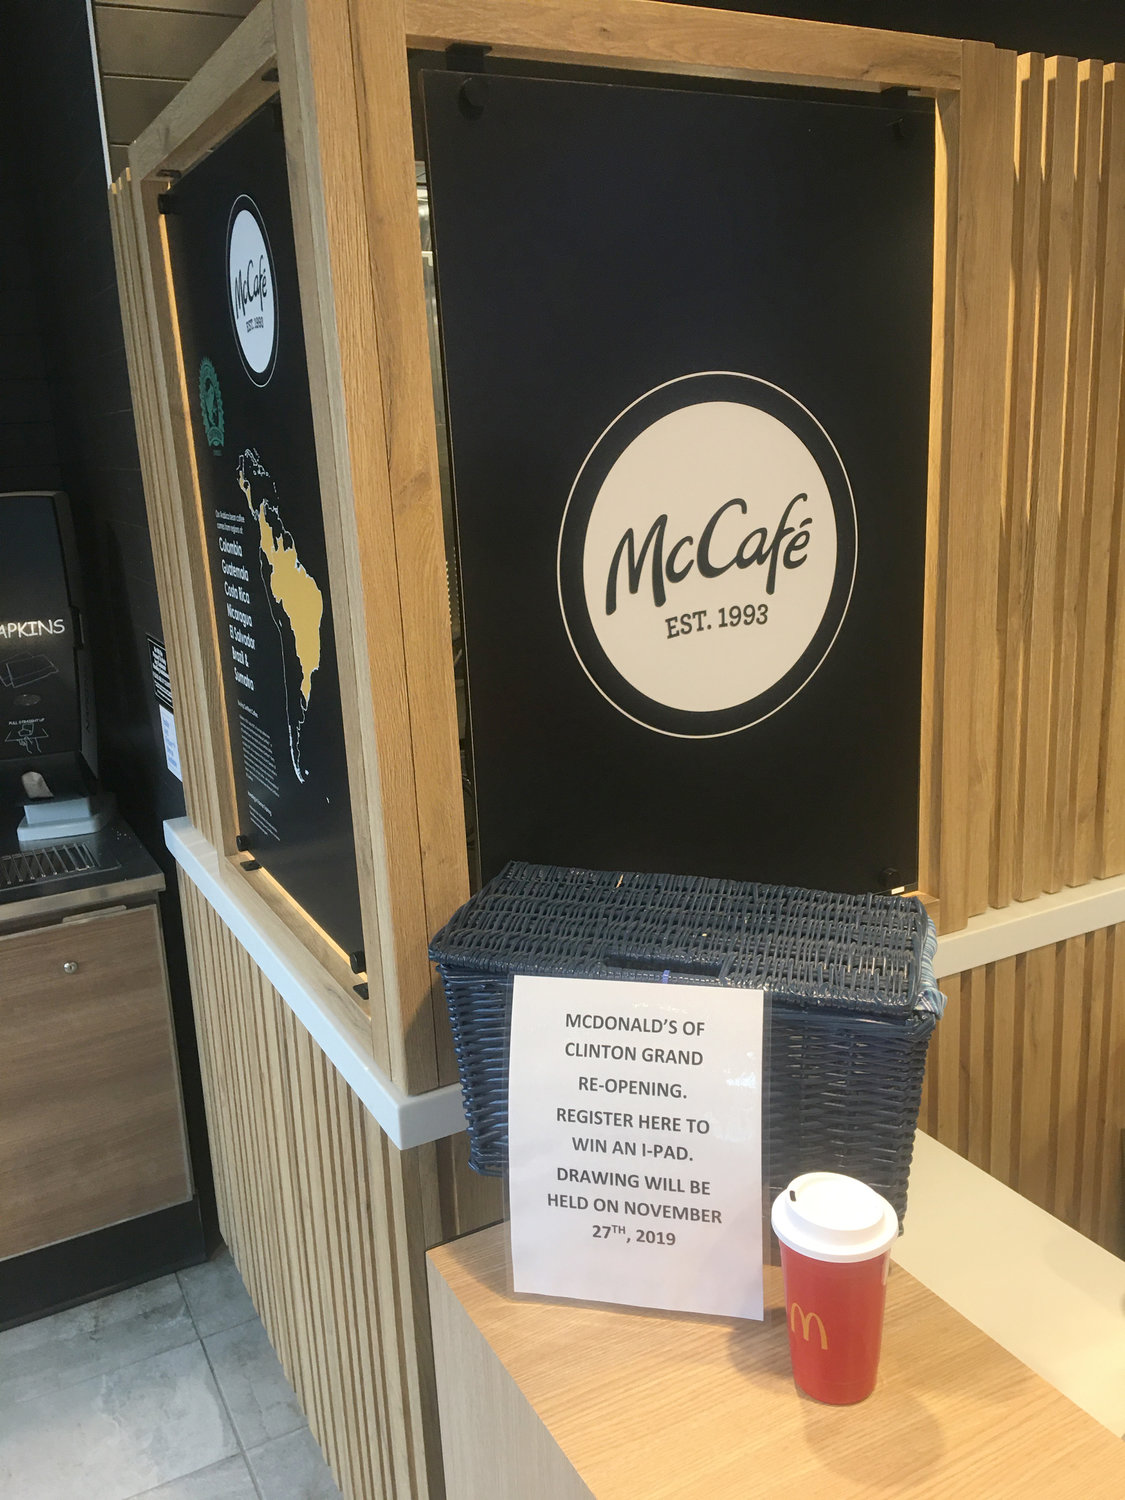 FANCY COFFEE— The Meadow St. McDonalds new McCafe coffee bar offers customers their favorite cappuccinos, lattes and macchiatos.